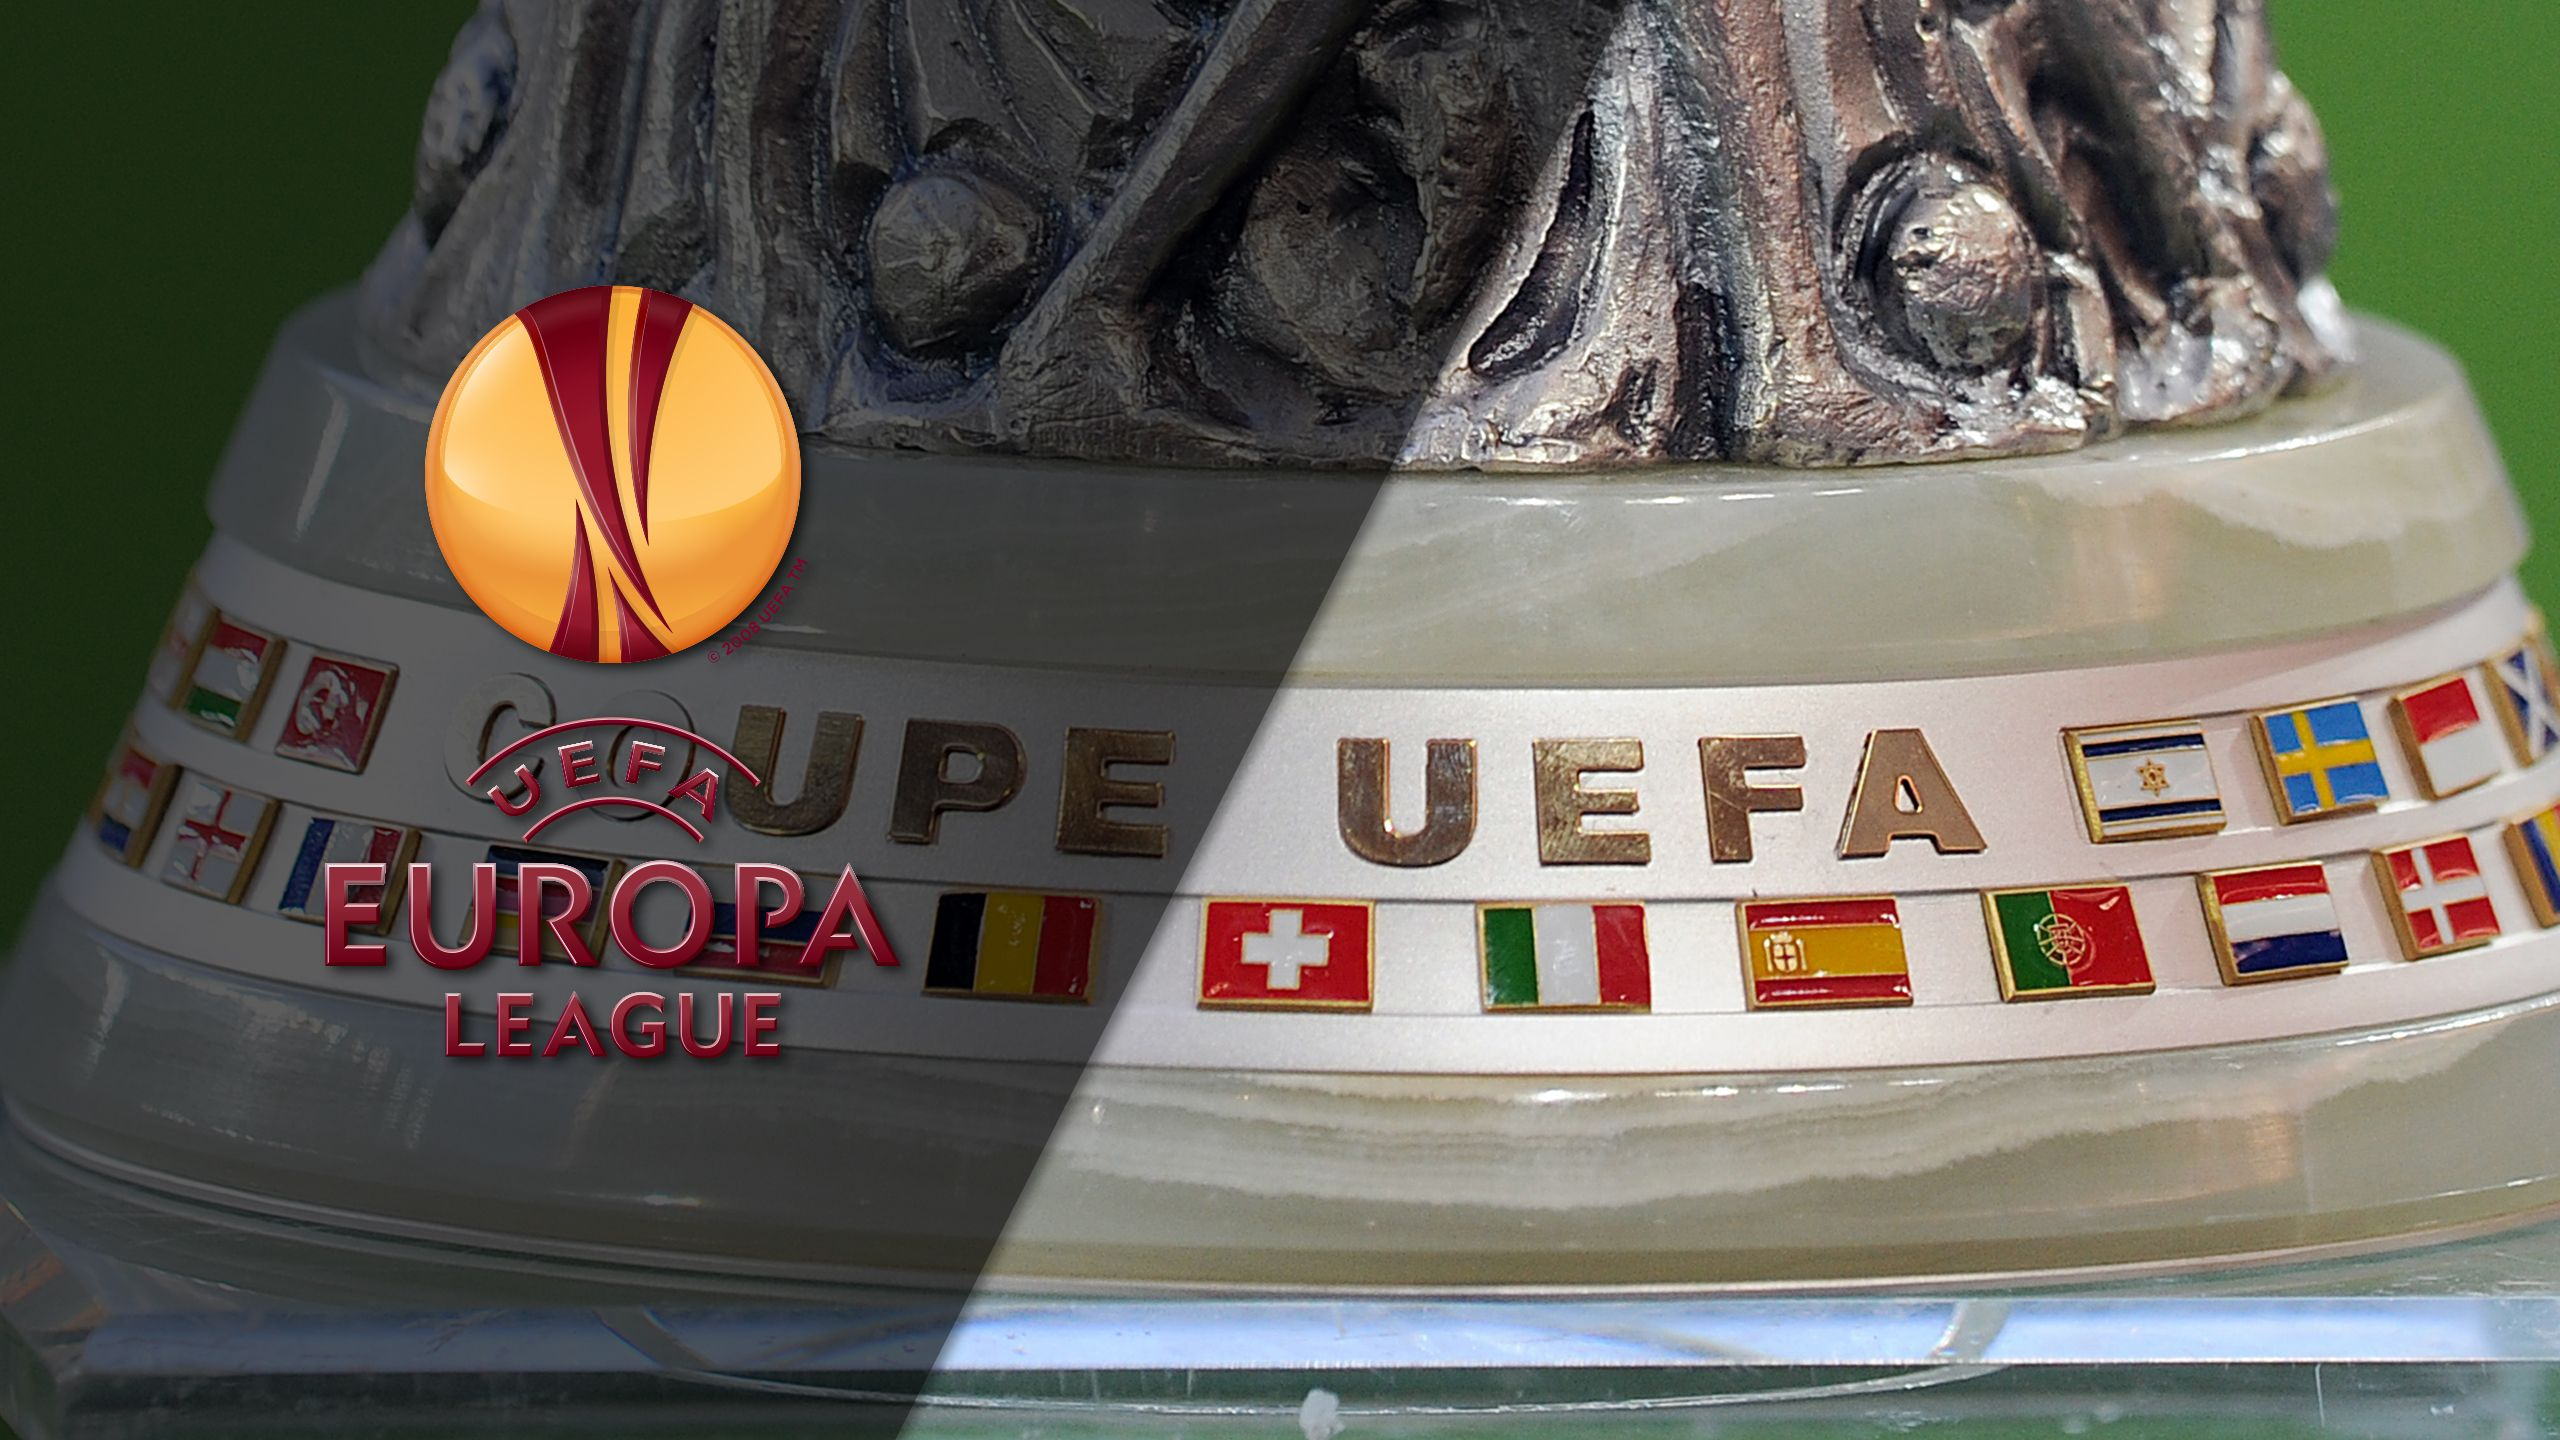 In Spanish - UEFA Europa League Highlights